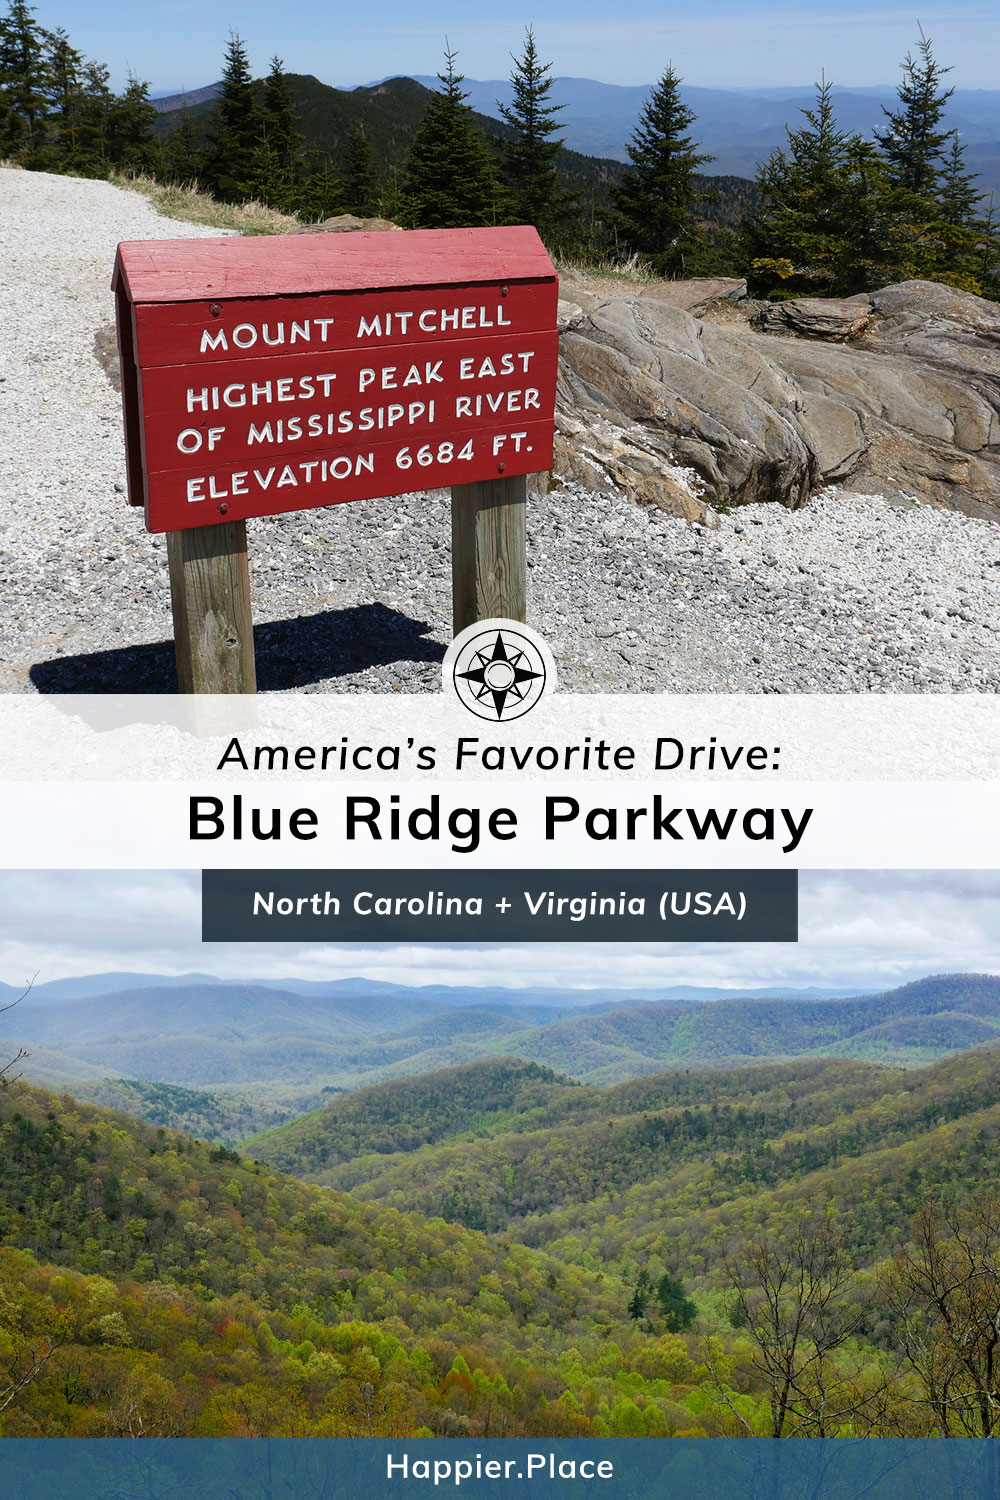 Blue Ridge Parkway: America's Favorite Drive and Longest Linear Park in the USA from Virginia to North Carolina. Mount Mitchell, highest peak